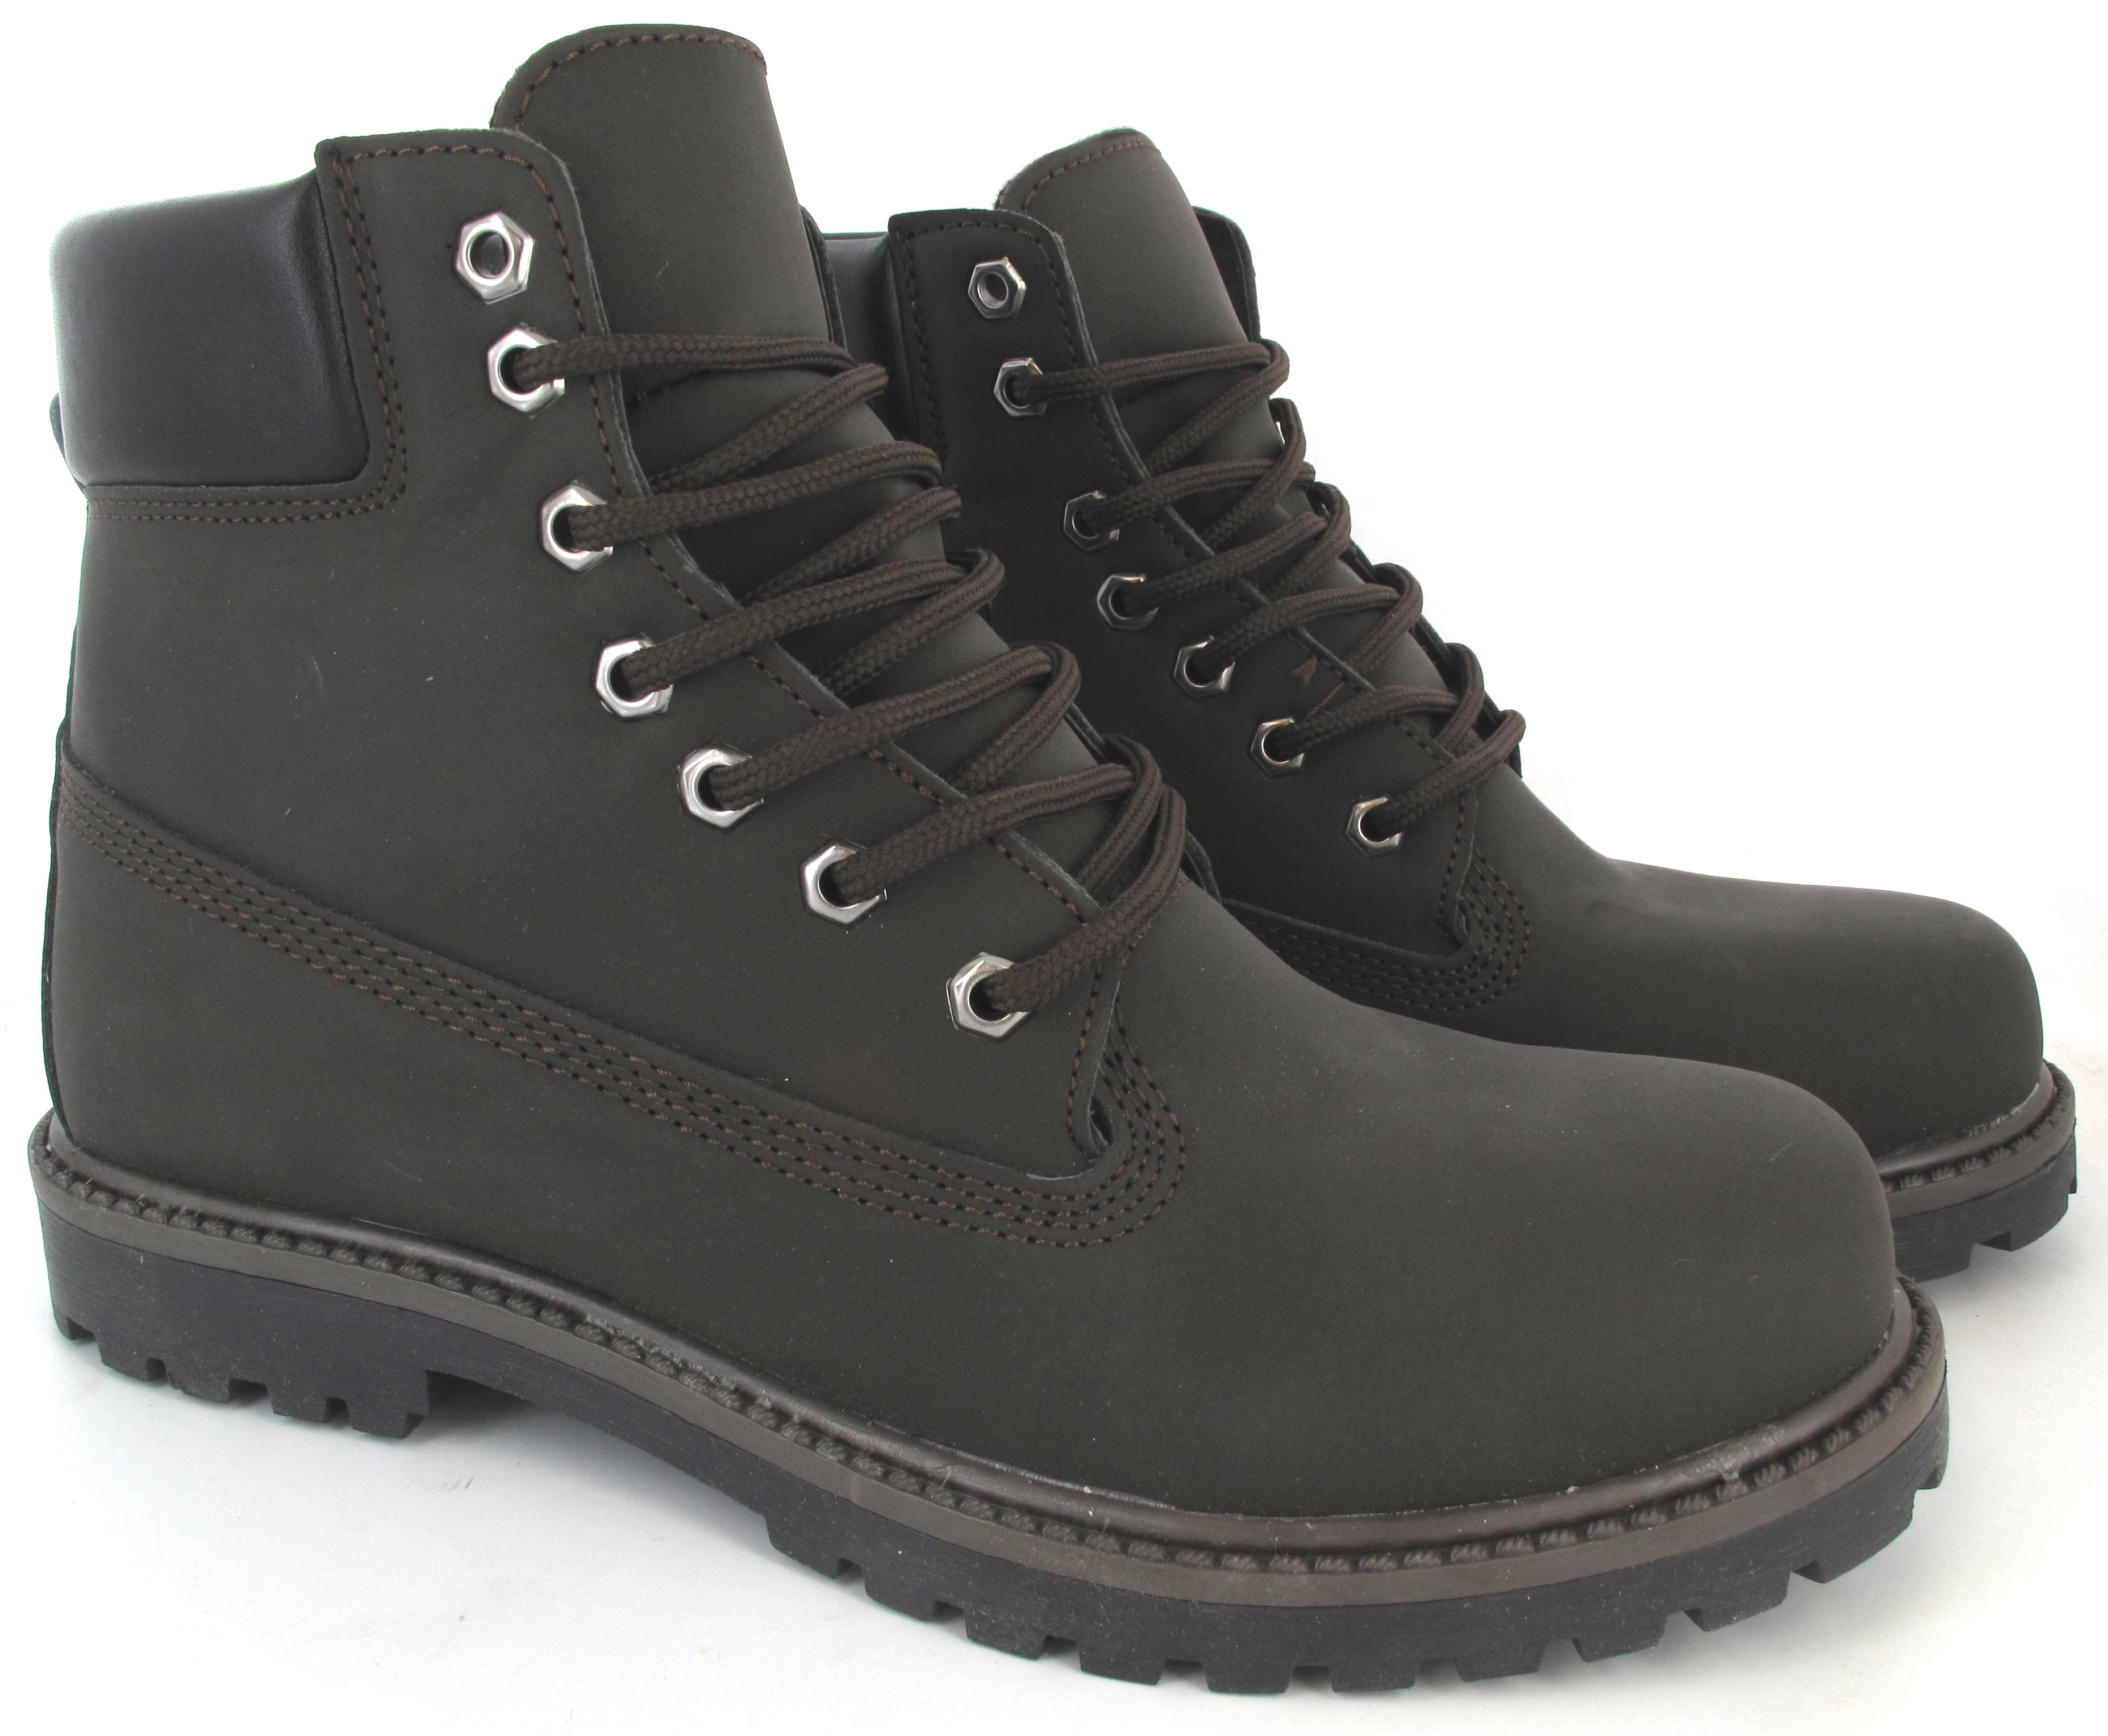 Work Boots For Boys